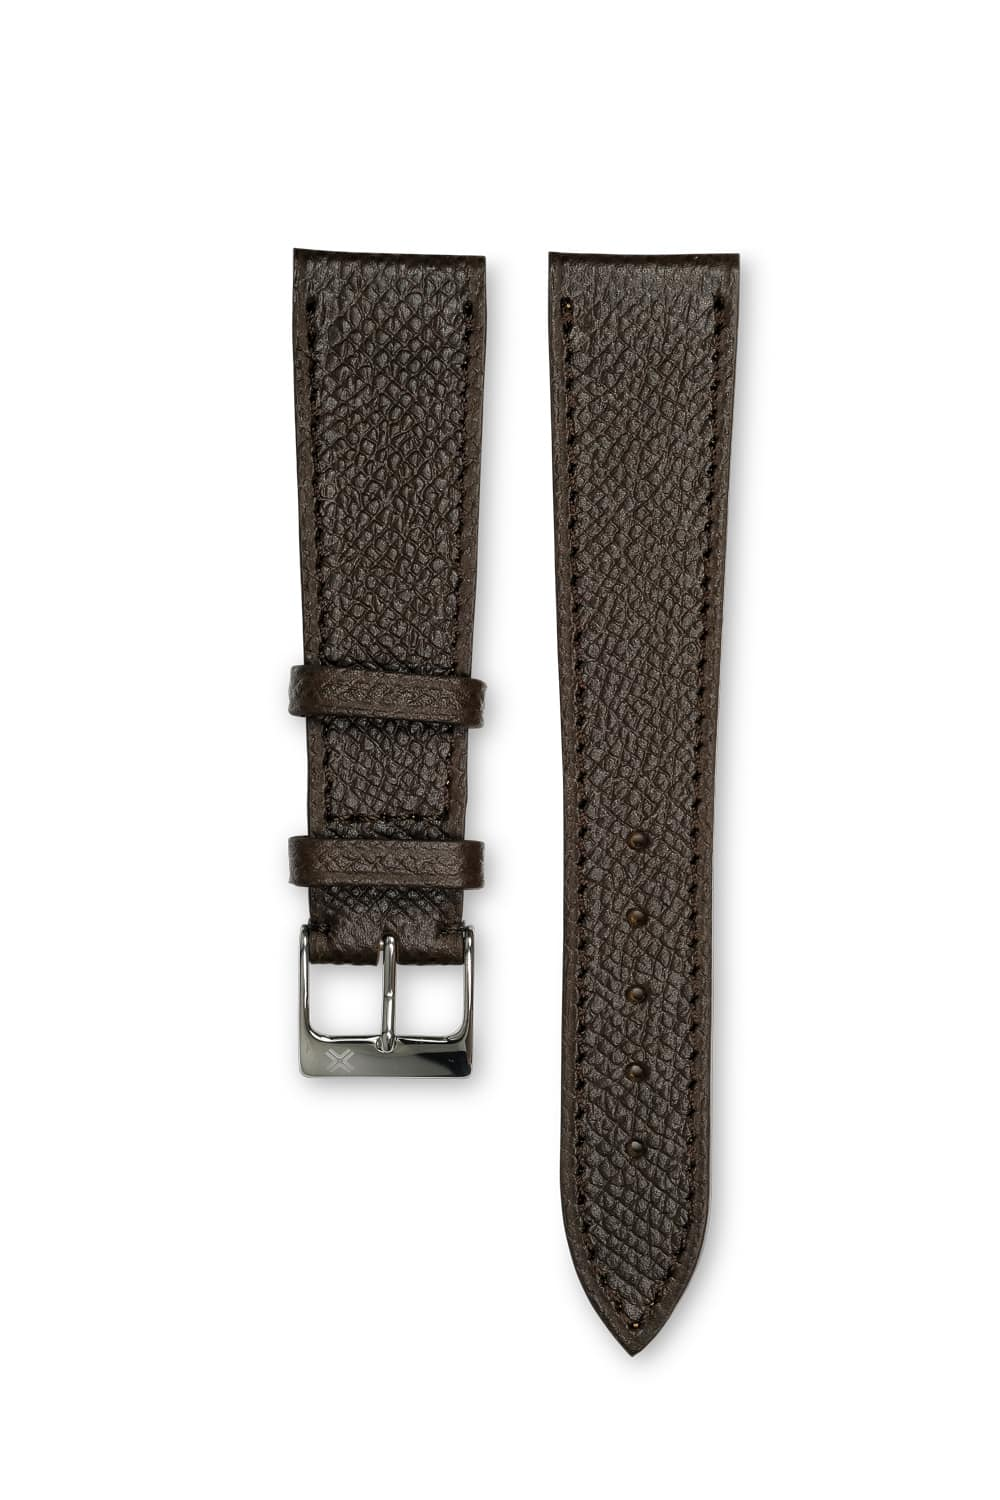 Grained chocolate brown leather watch strap - tone on tone stitching - LUGS brand